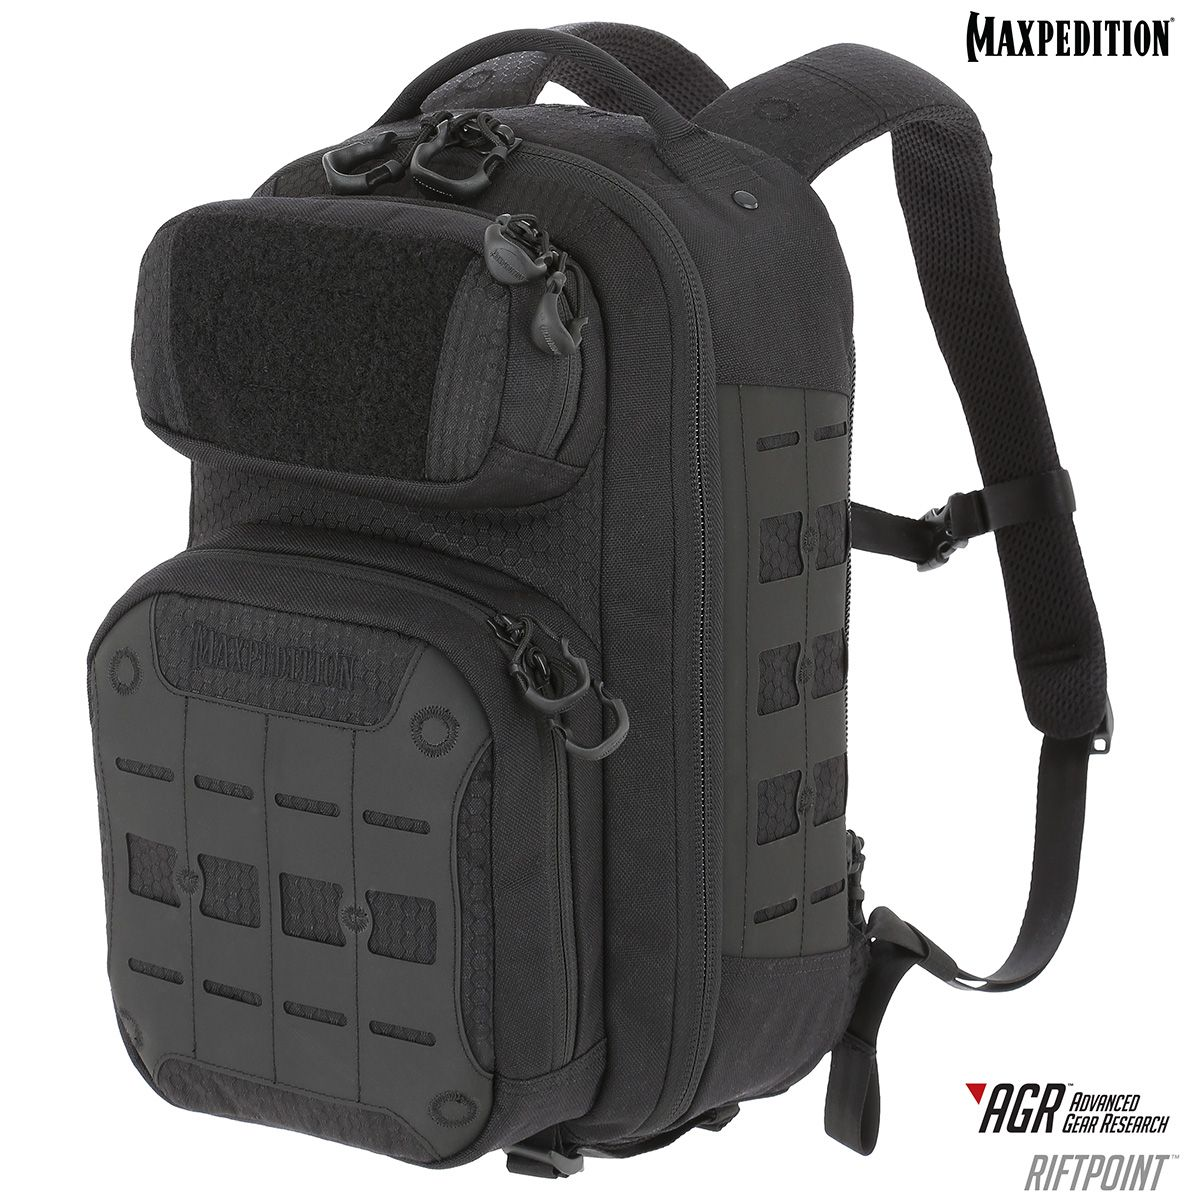 Maxpedition Riftpoint AGR Advanced Gear Research CCW-Enabled Backpack 15L, Black